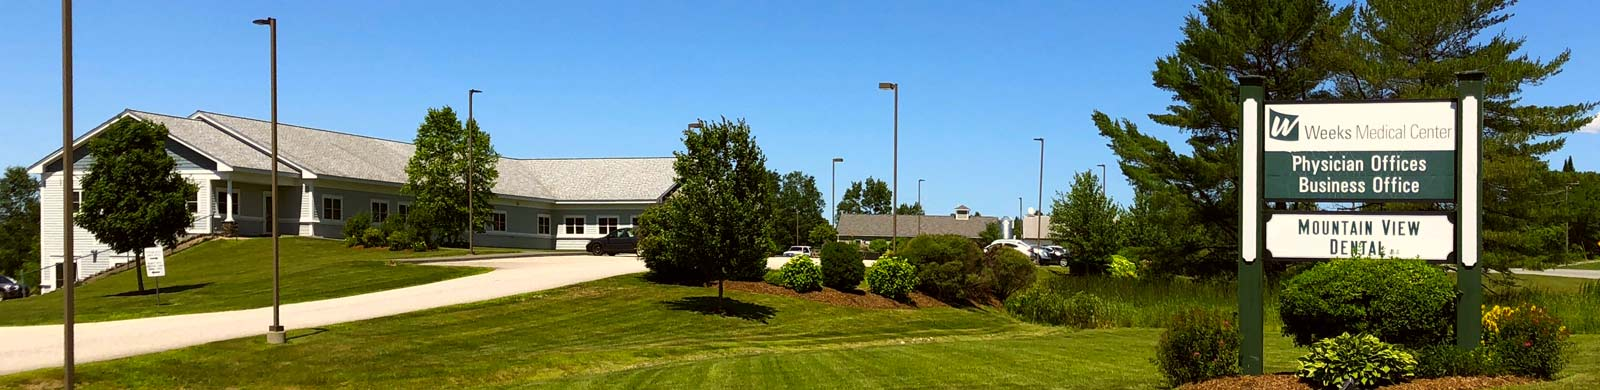 Mountain View Dental Offices in Whitefield, NH